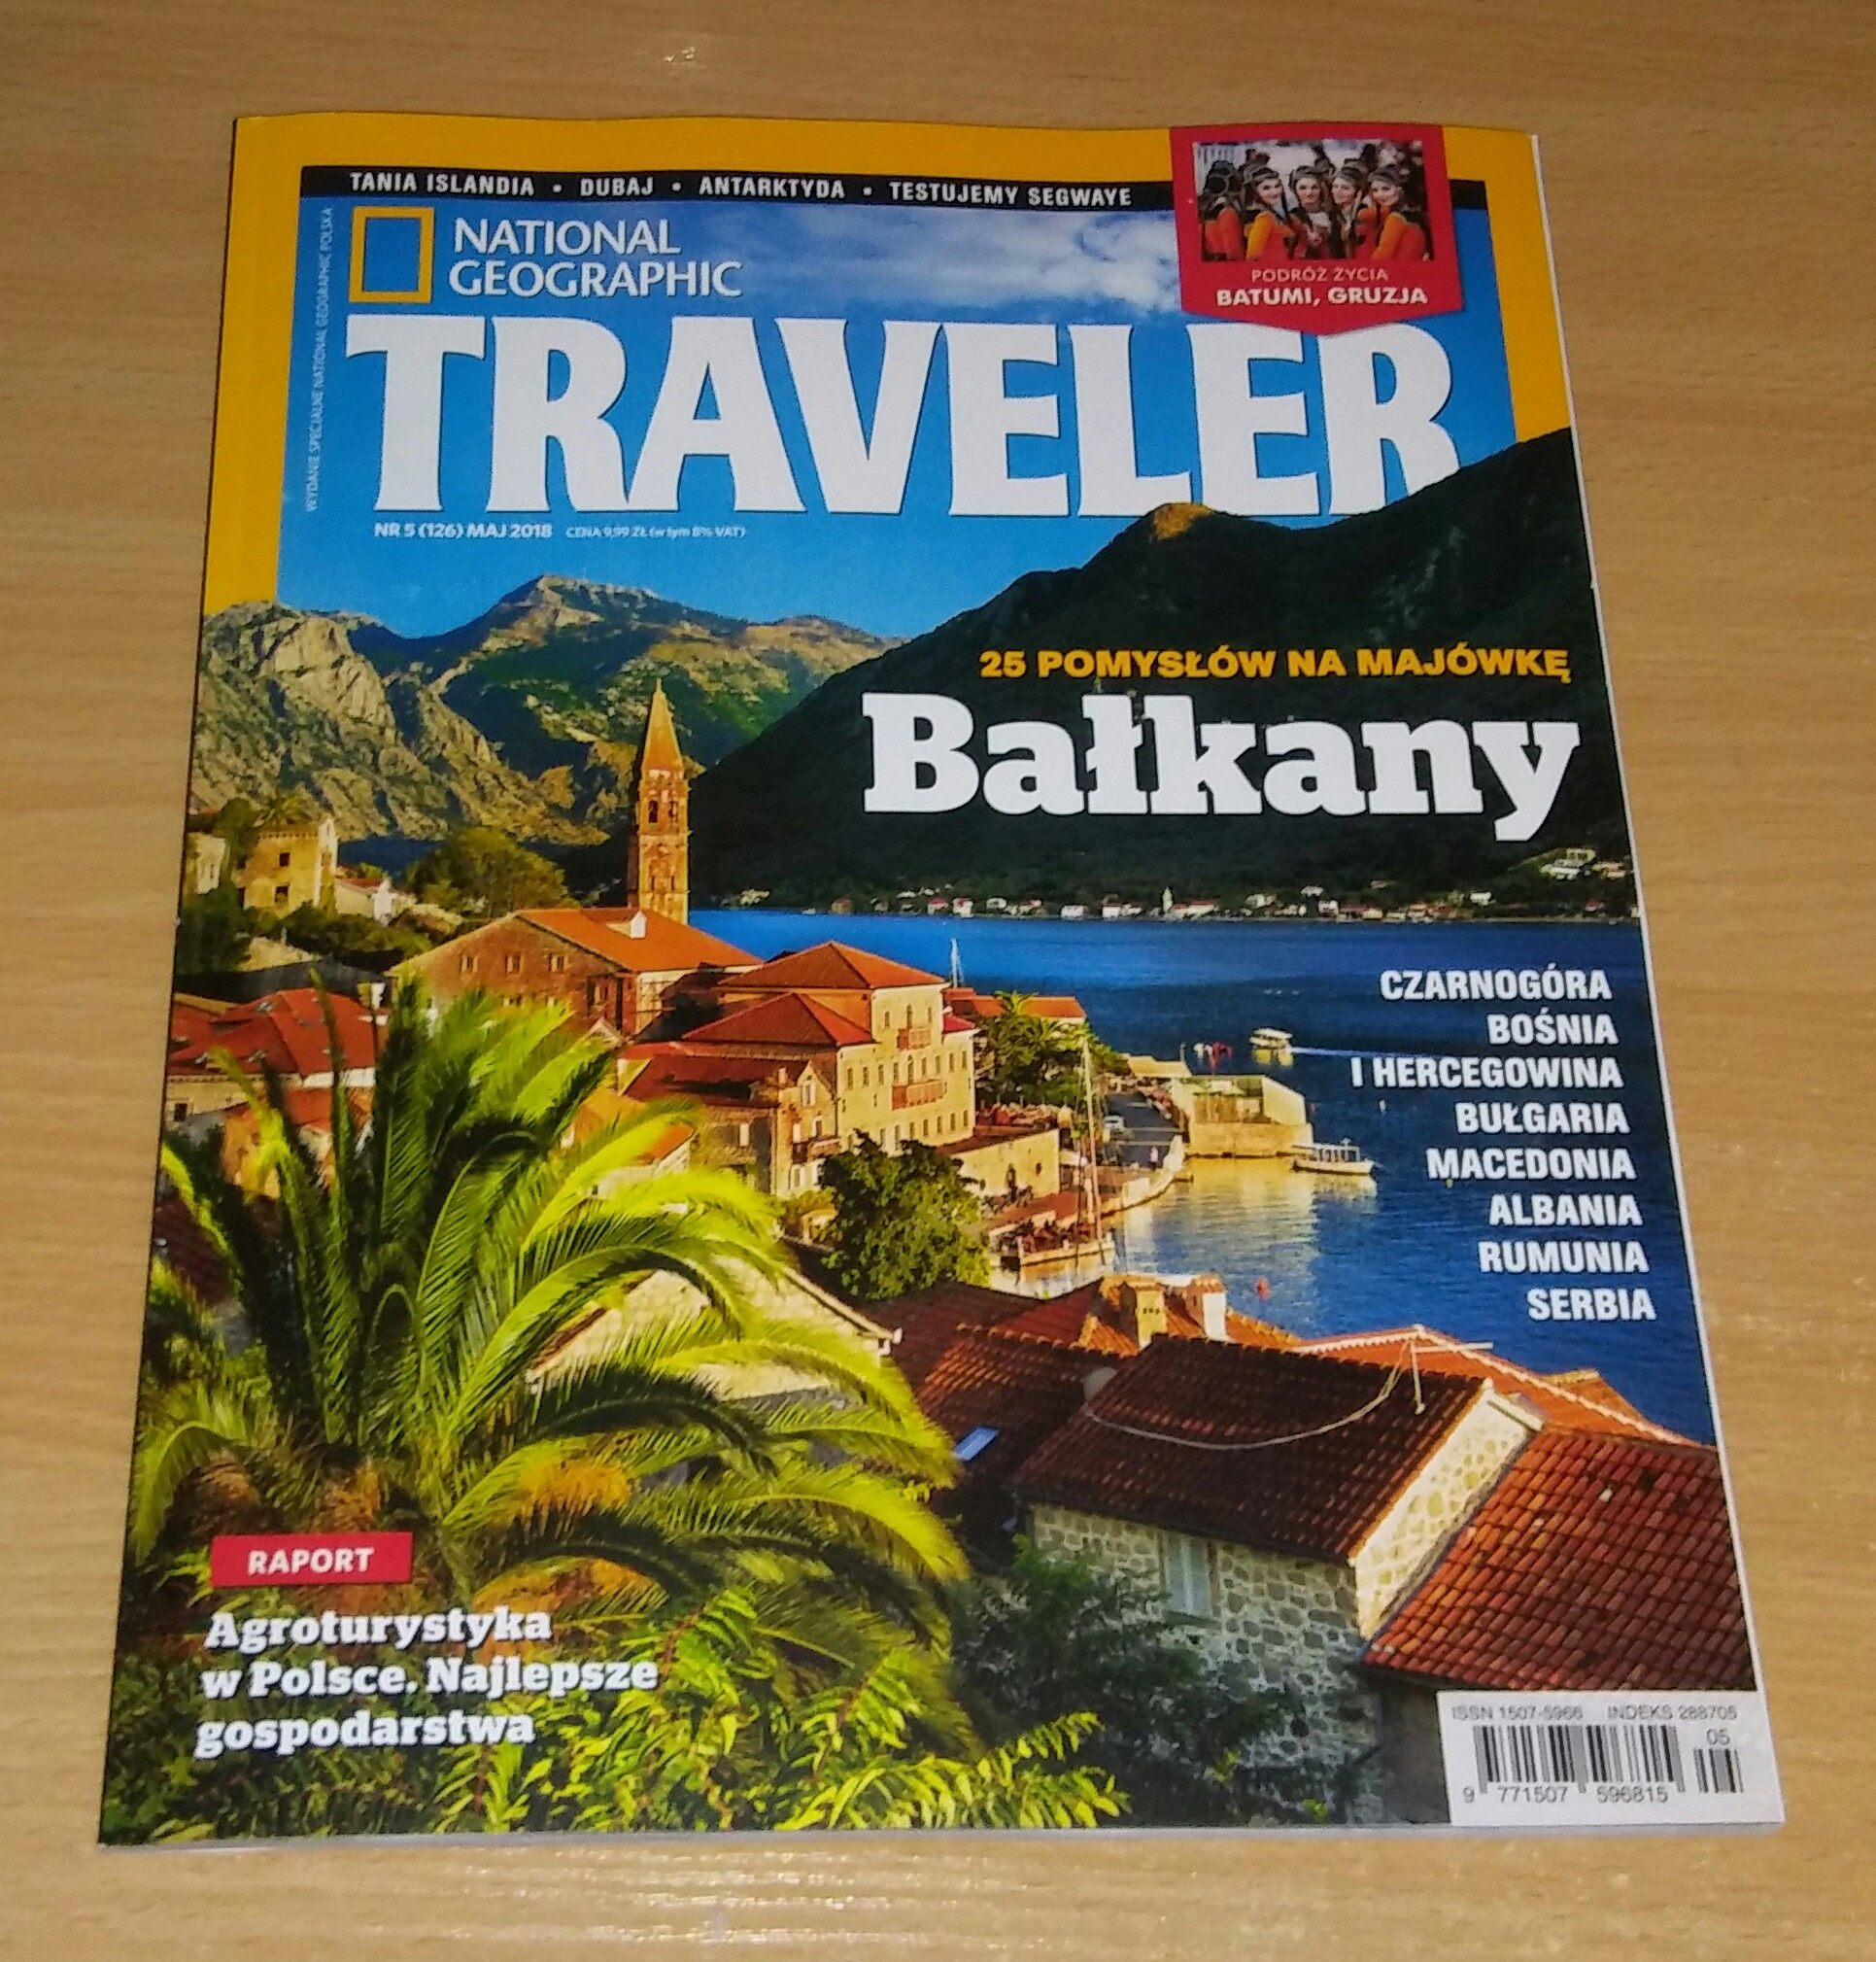 NATIONAL GEOGRAPHIC TRAVELER 5/2018 BAŁKANY